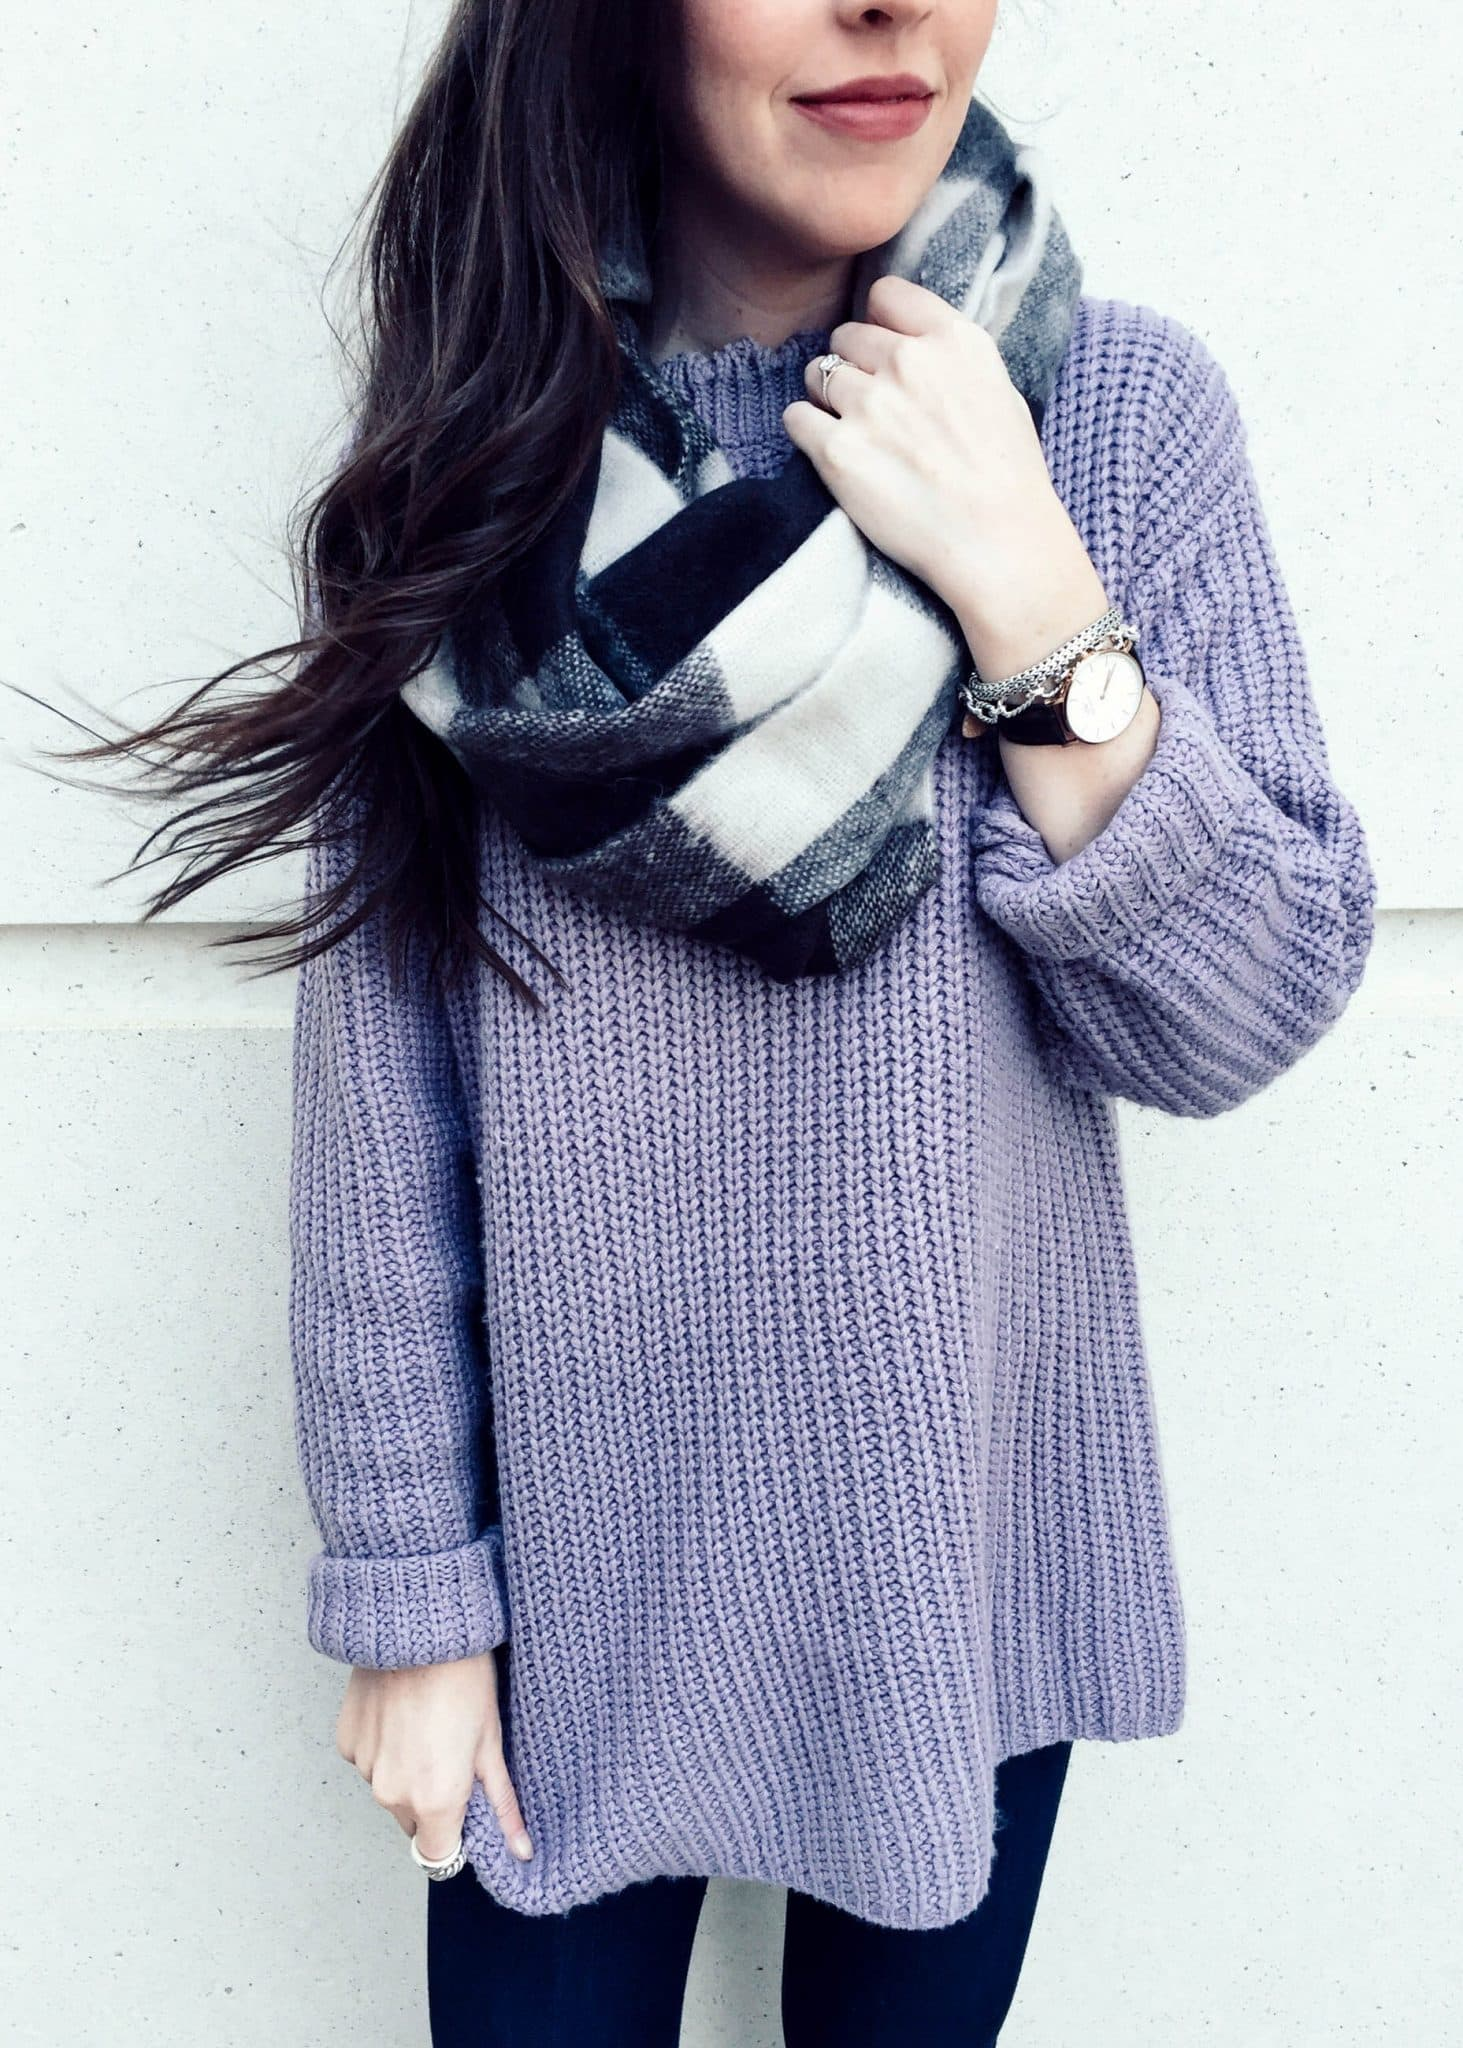 purple sweater, dark skinny jeans, plaid infinity scarf, winter outfit idea, pretty in the pines blog, nc blogger